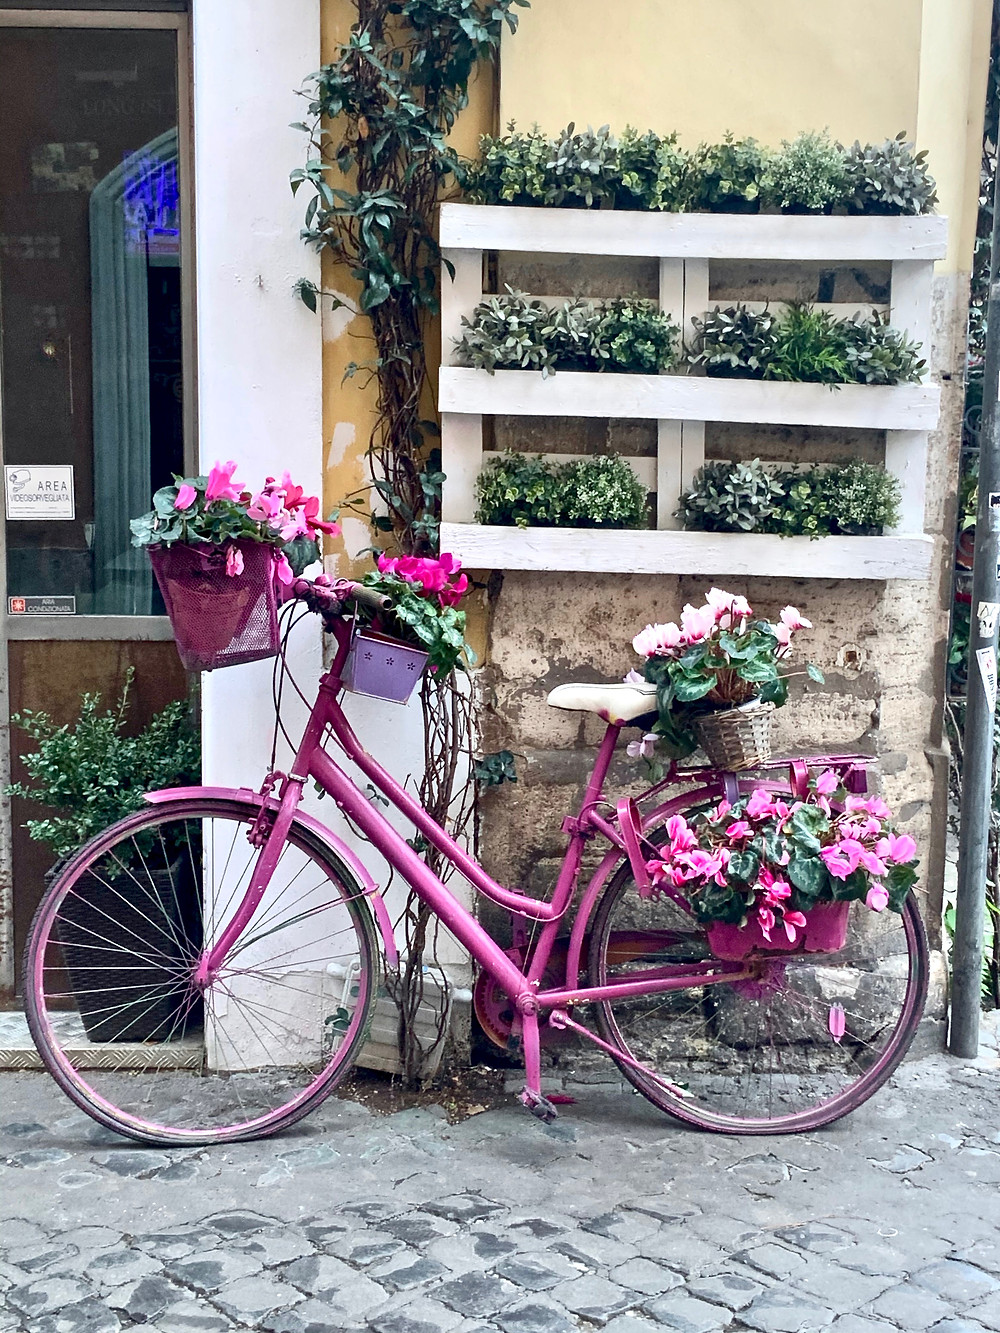 bike in Rome's Trastevere neighborhood